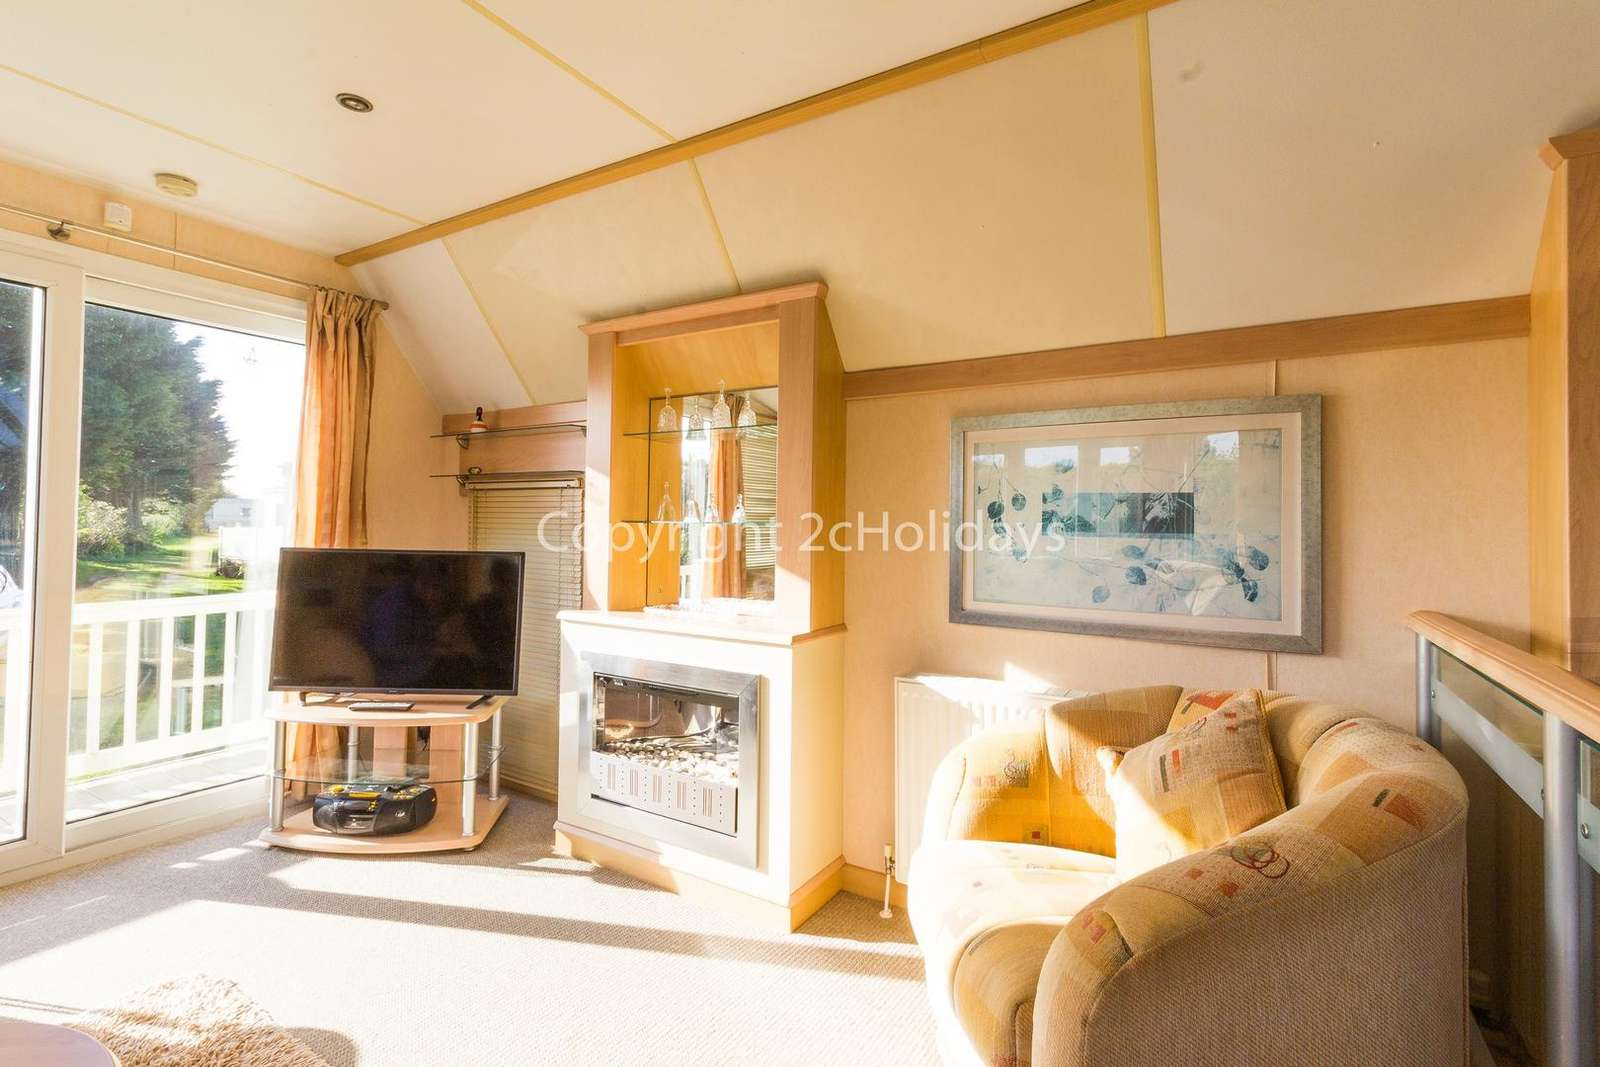 The living area is a great place to relax with a double sofa bed and TV